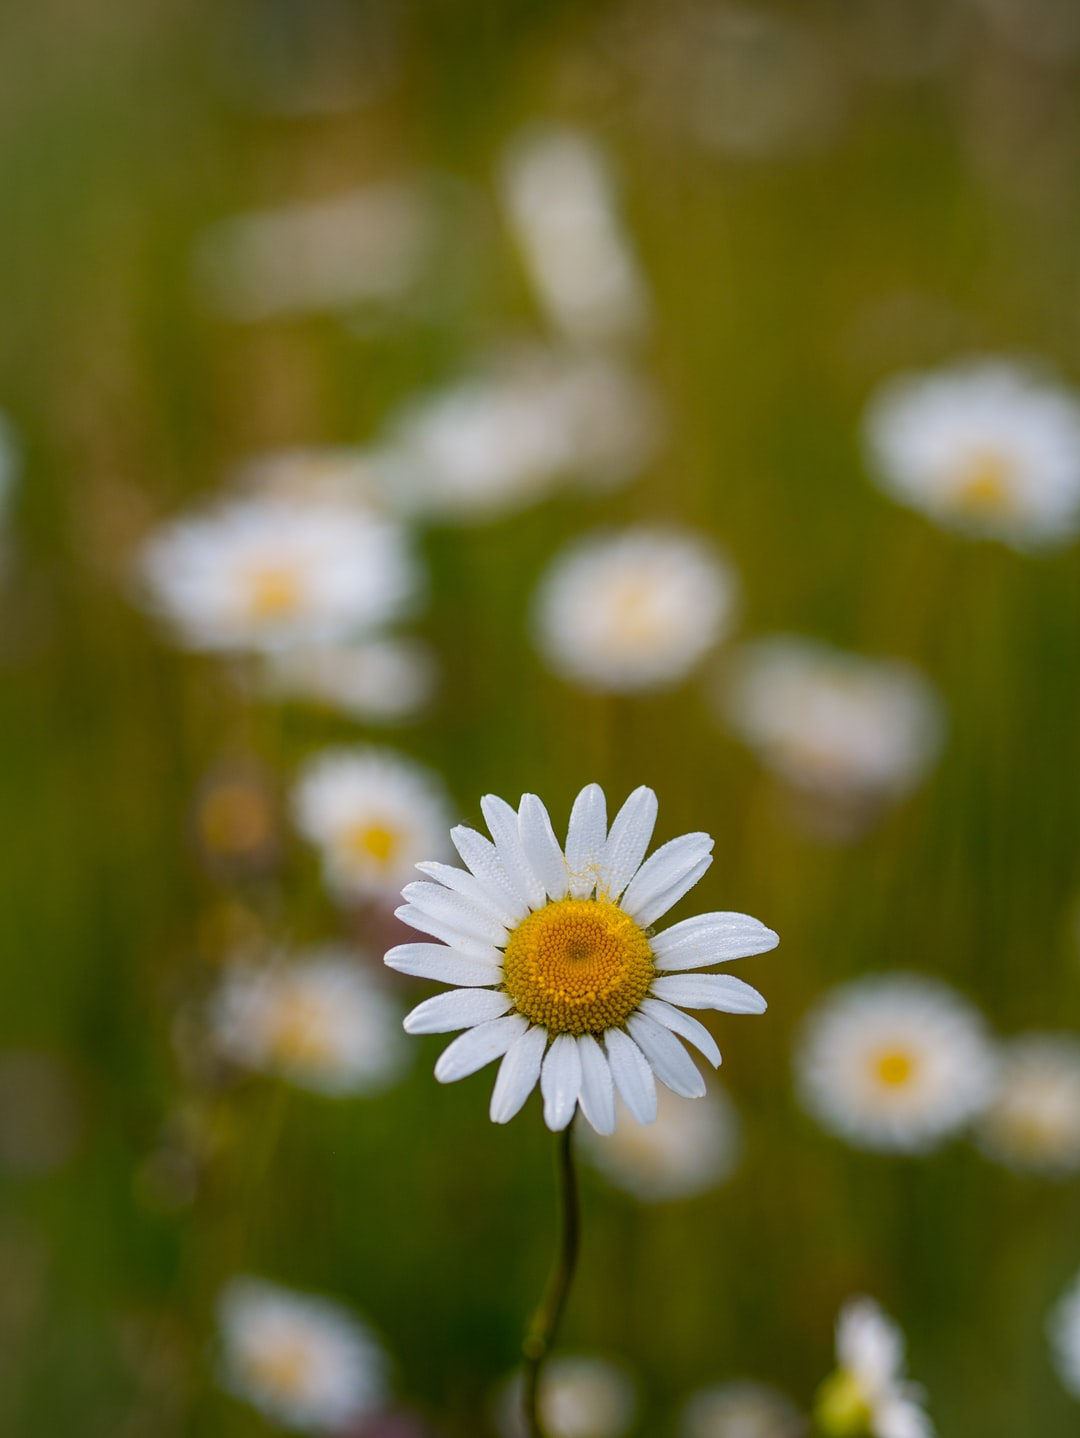 500 daisy pictures download free images on unsplash izmirmasajfo